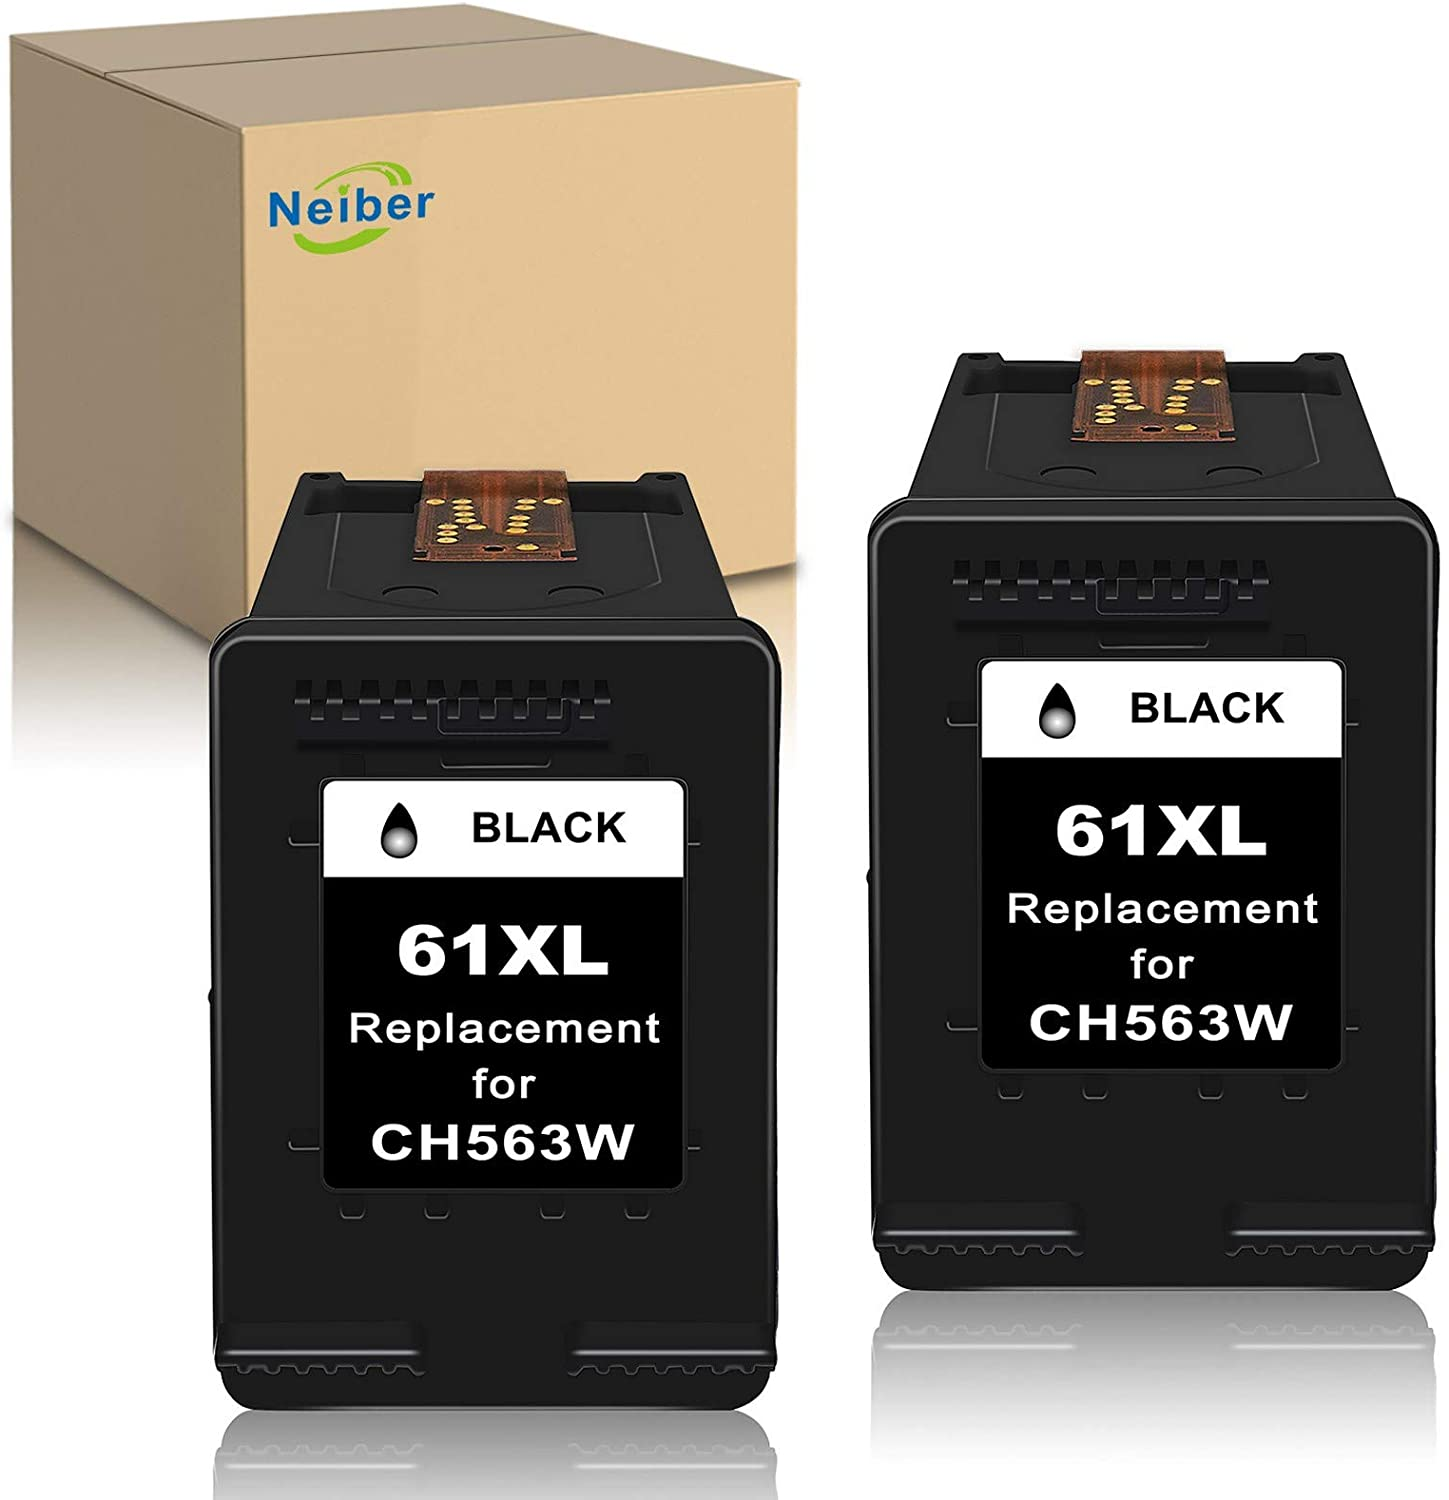 Neiber Remanufactured Ink Cartridge Replacement for HP 61XL 61 XL (Black 2-Pack) Work with Envy 4500 4502 5530 DeskJet 2512 1512 2542 2540 2544 3000 3052a 1055 3051a 2548 OfficeJet 4630 Printer